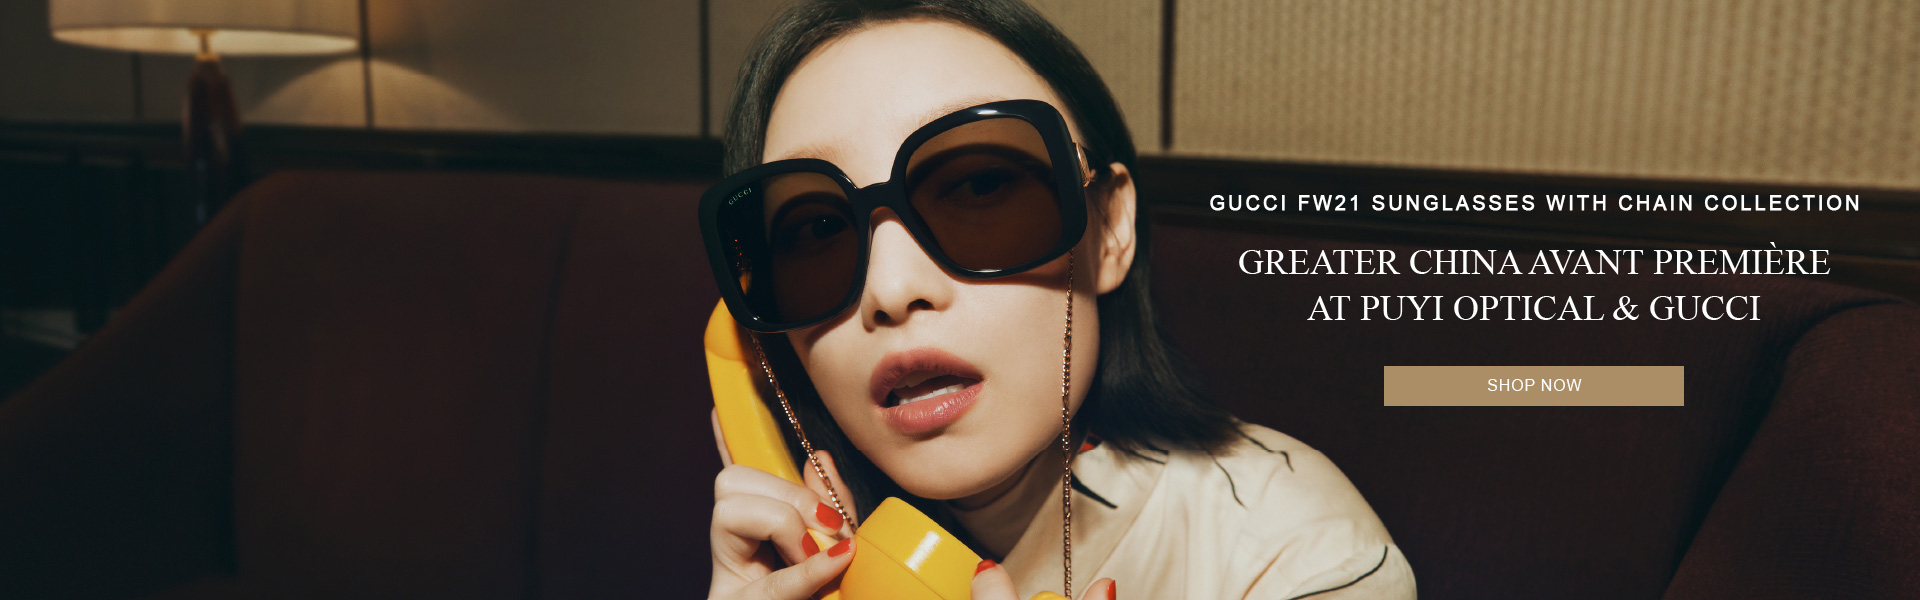 Gucci FW21 SUNGLASSES WITH CHAIN COLLECTION